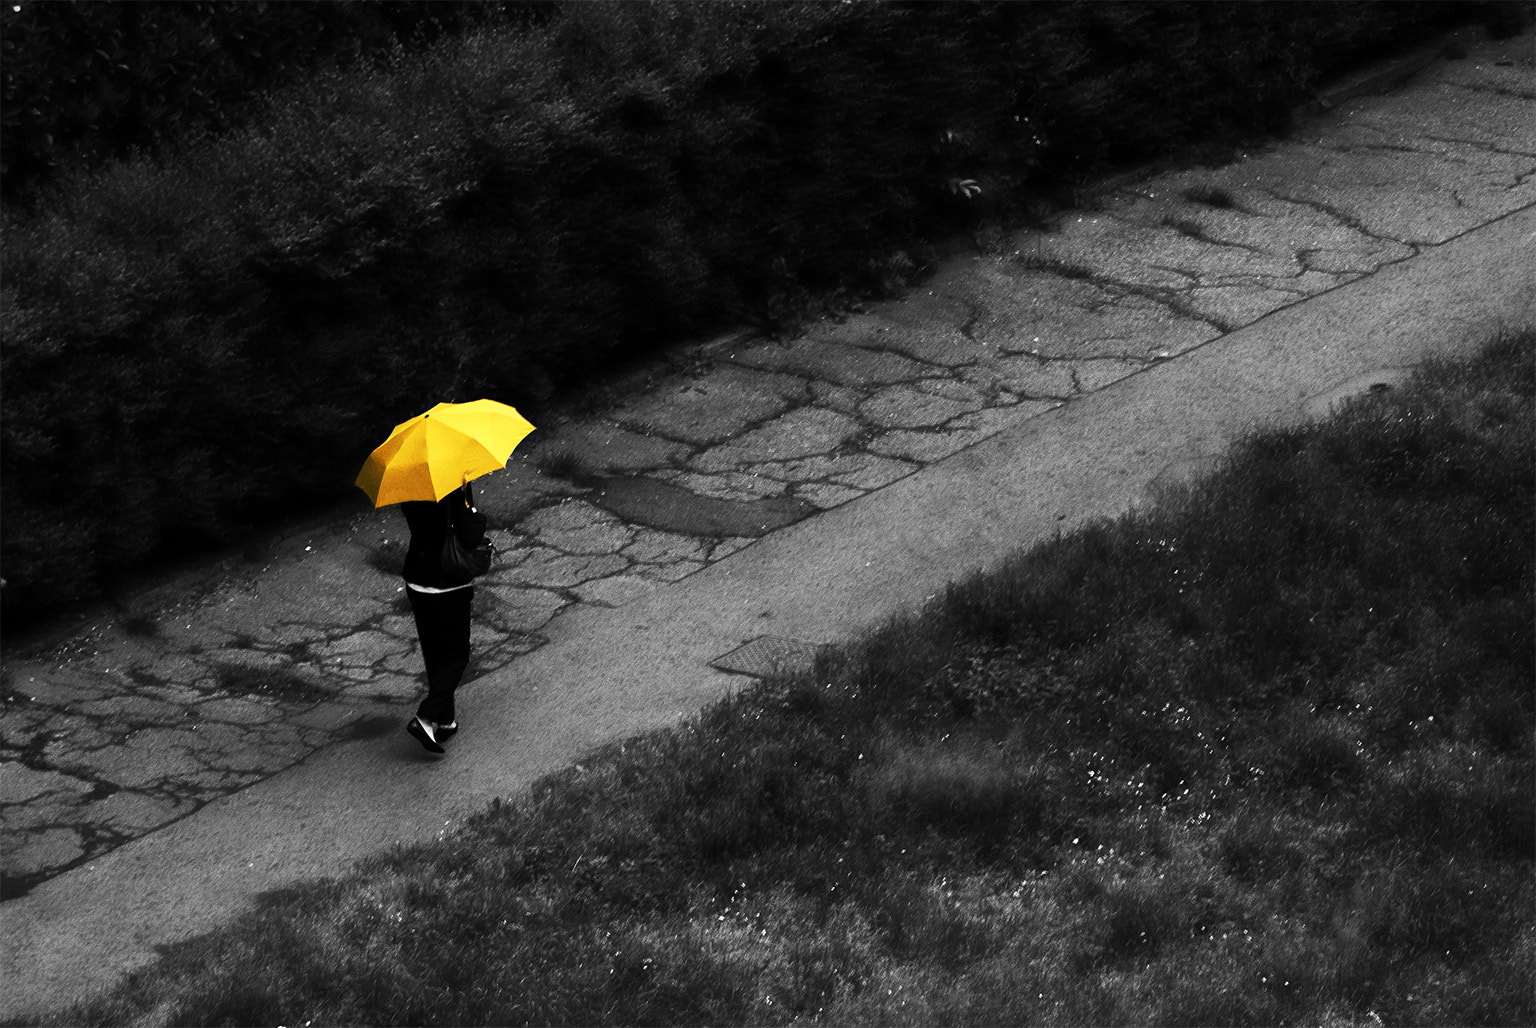 Photograph In yellow. by Simone Furiosi on 500px